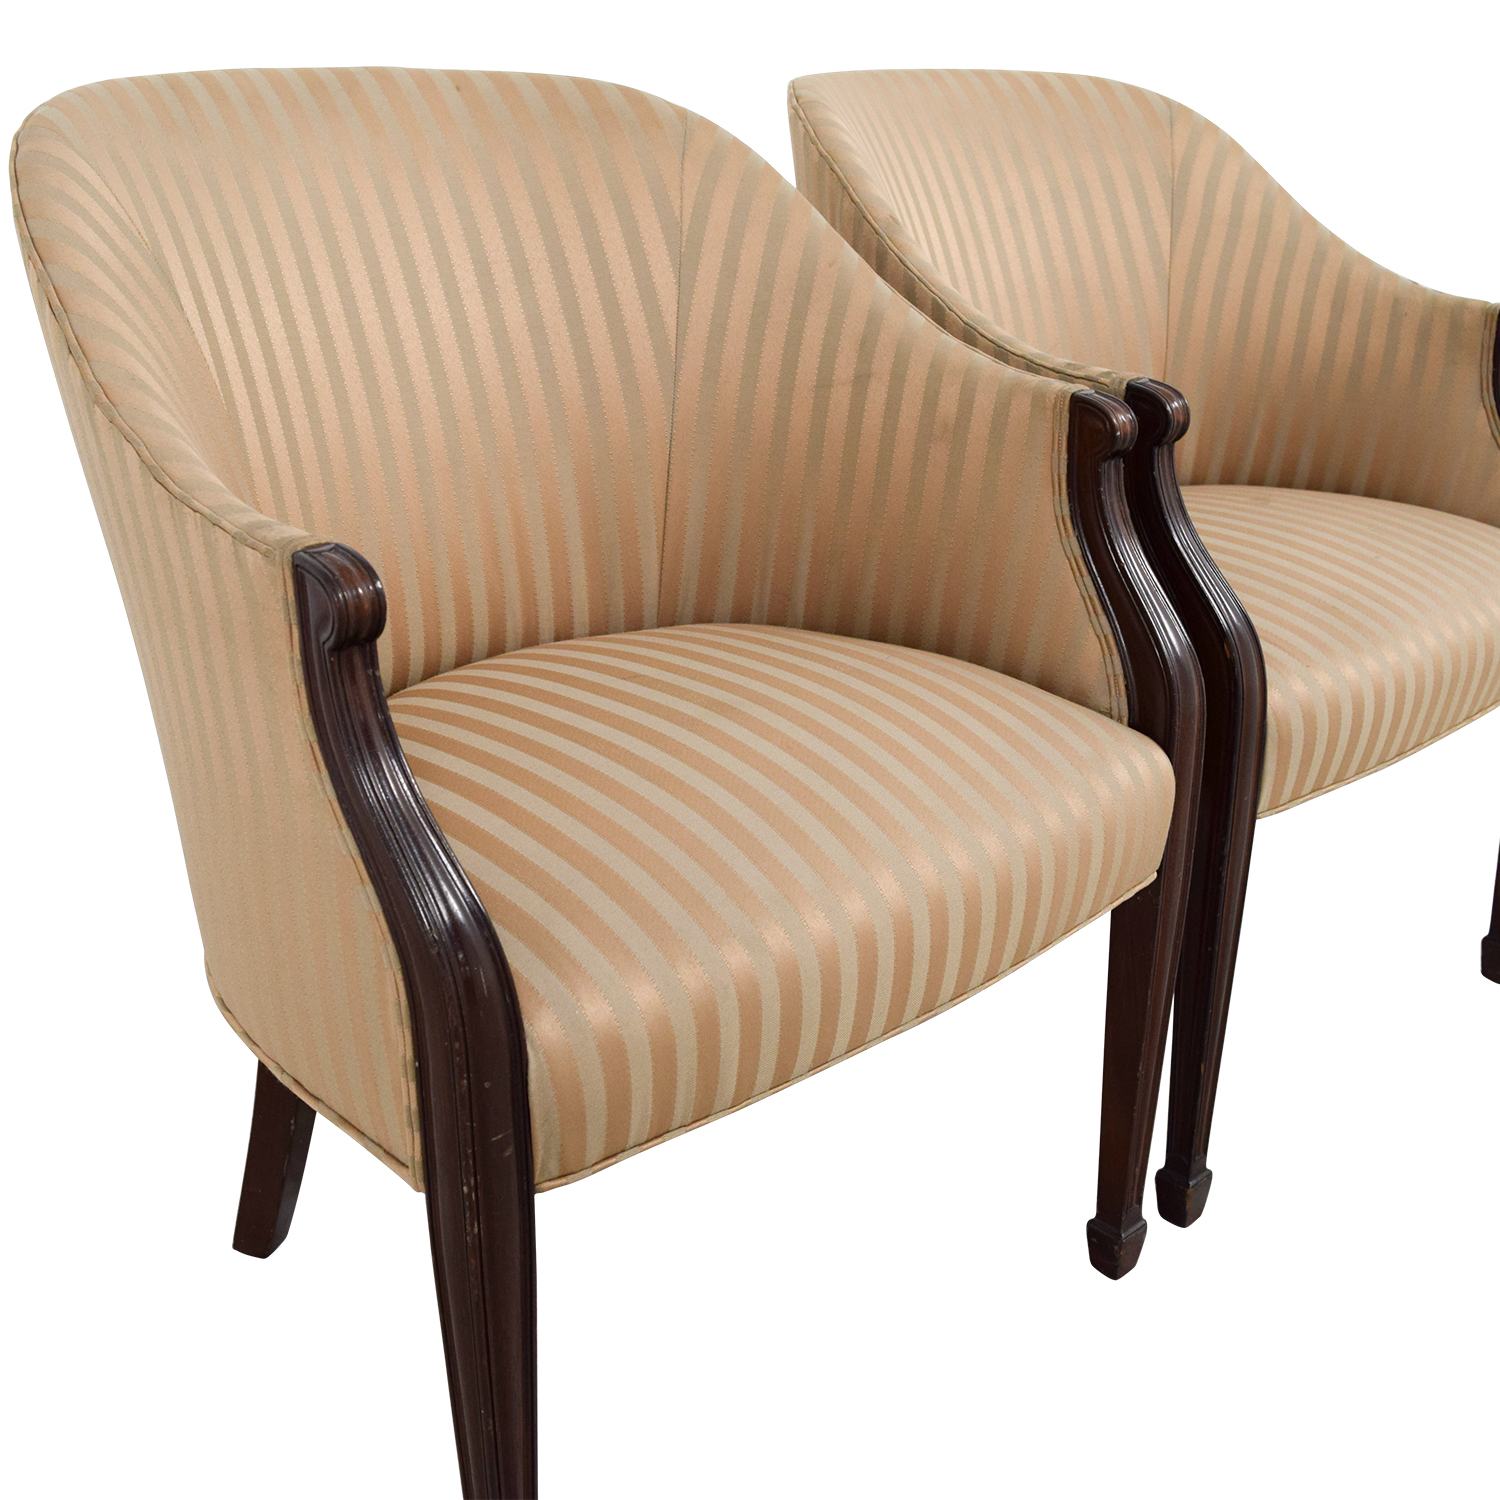 Accent Chairs Prices 90 Off Paoli Paoli Gold Striped Accent Chairs Chairs